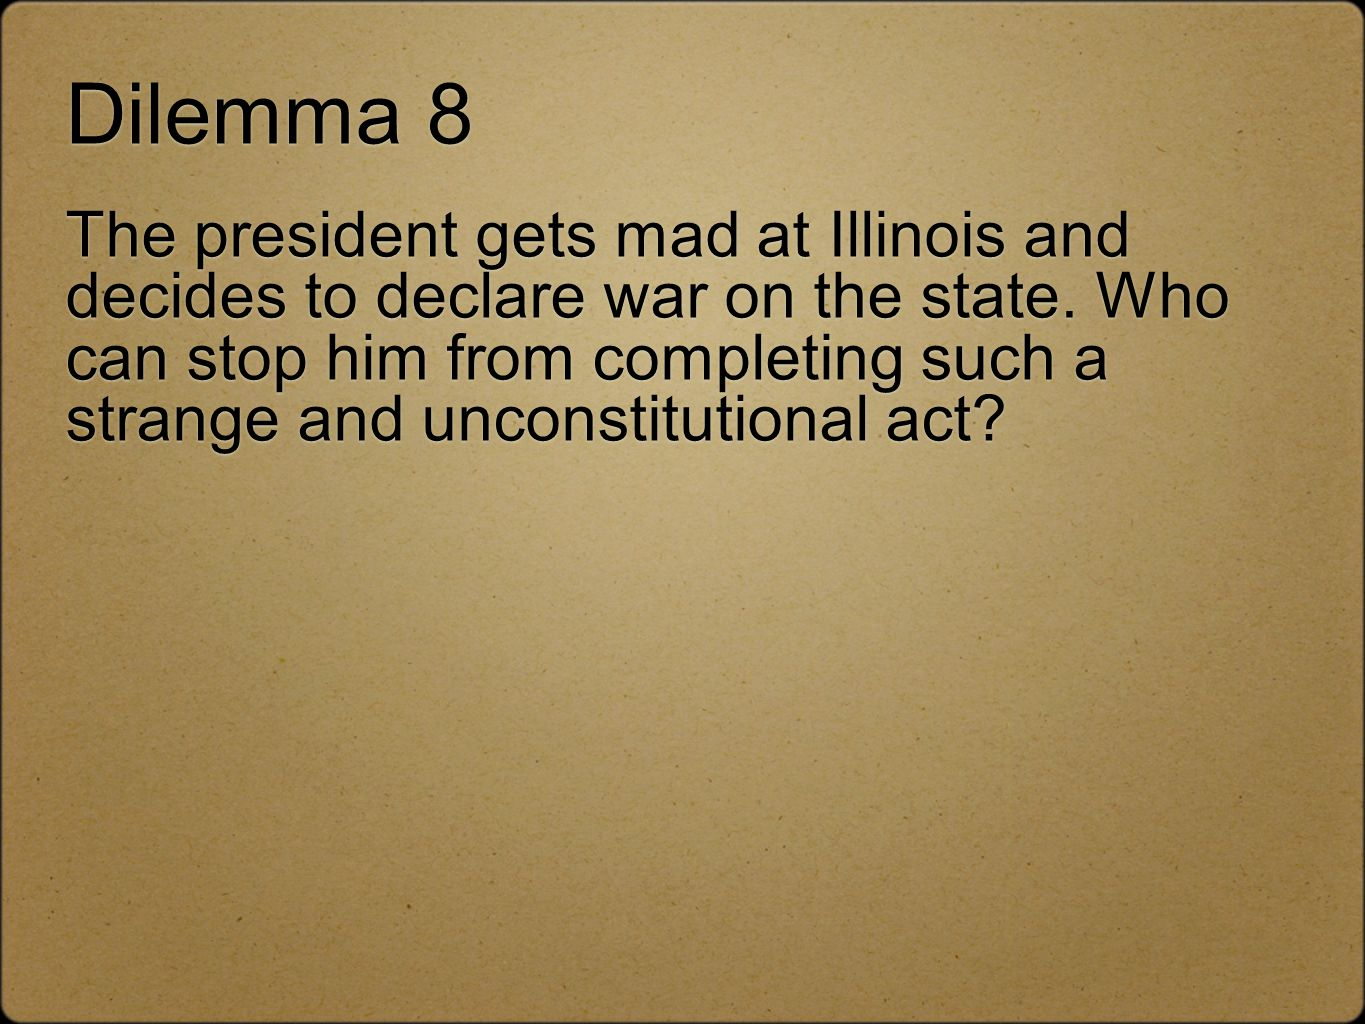 Dilemma 8 The president gets mad at Illinois and decides to declare war on the state. Who can stop him from completing such a strange and unconstituti